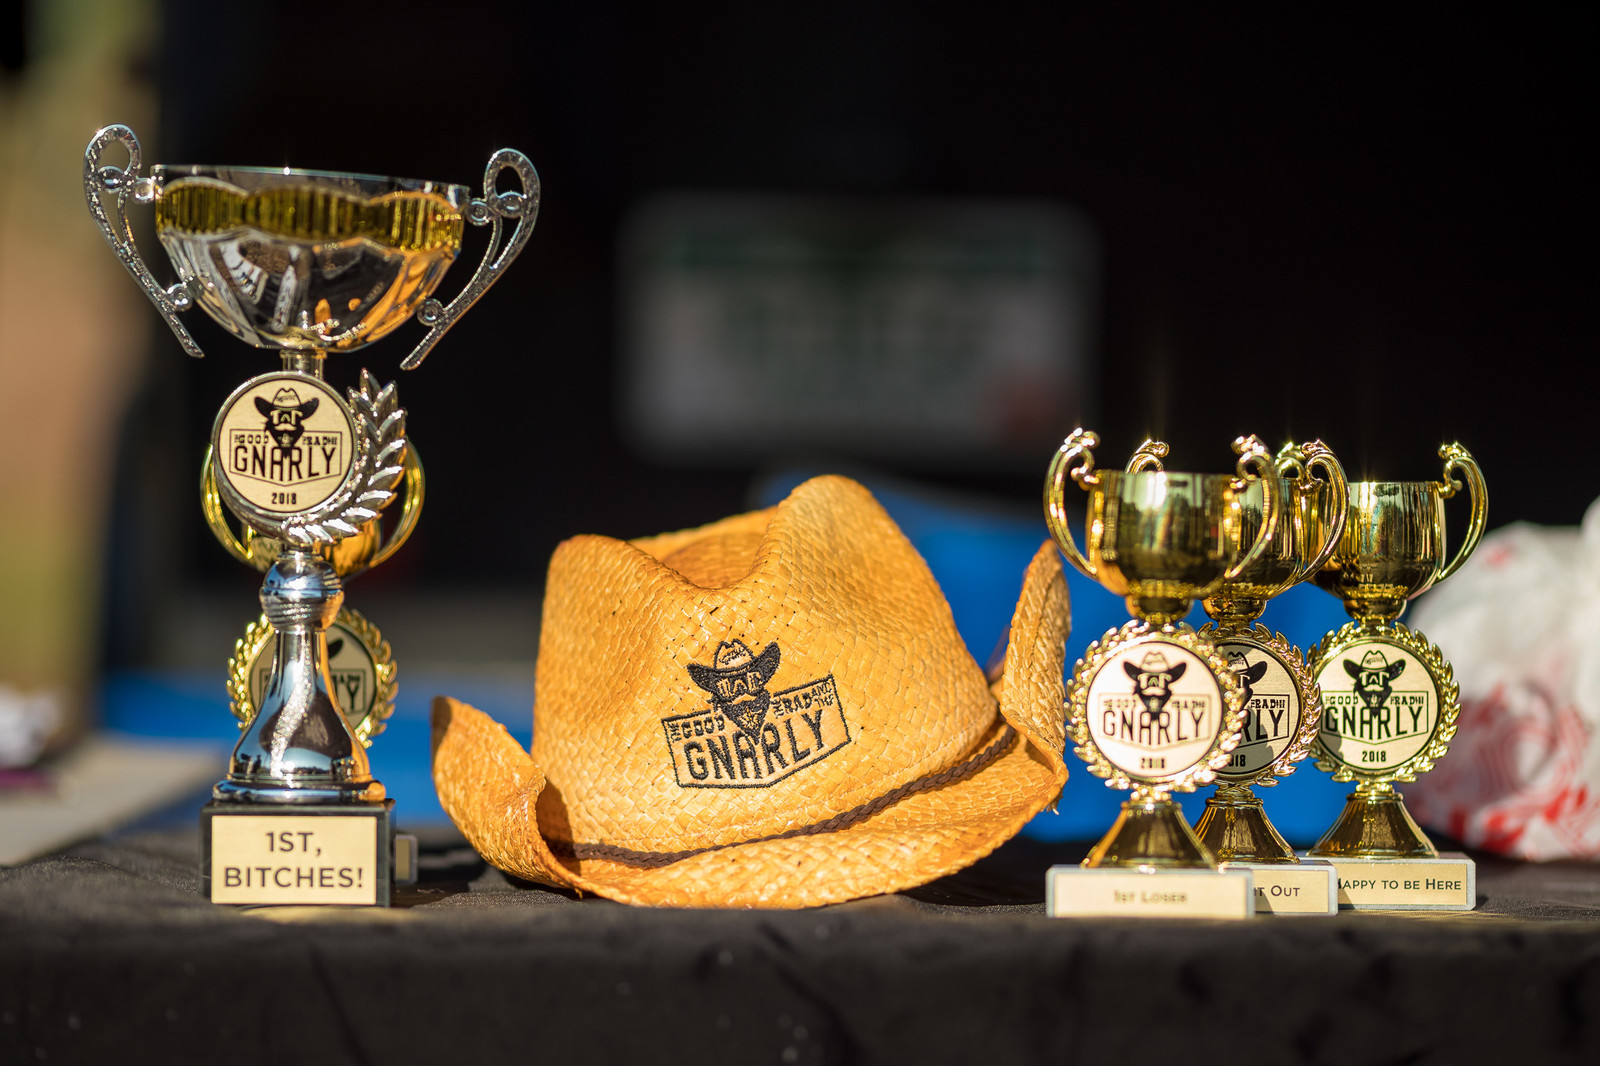 Everyone on the podium went home with a signature hat and trophy!